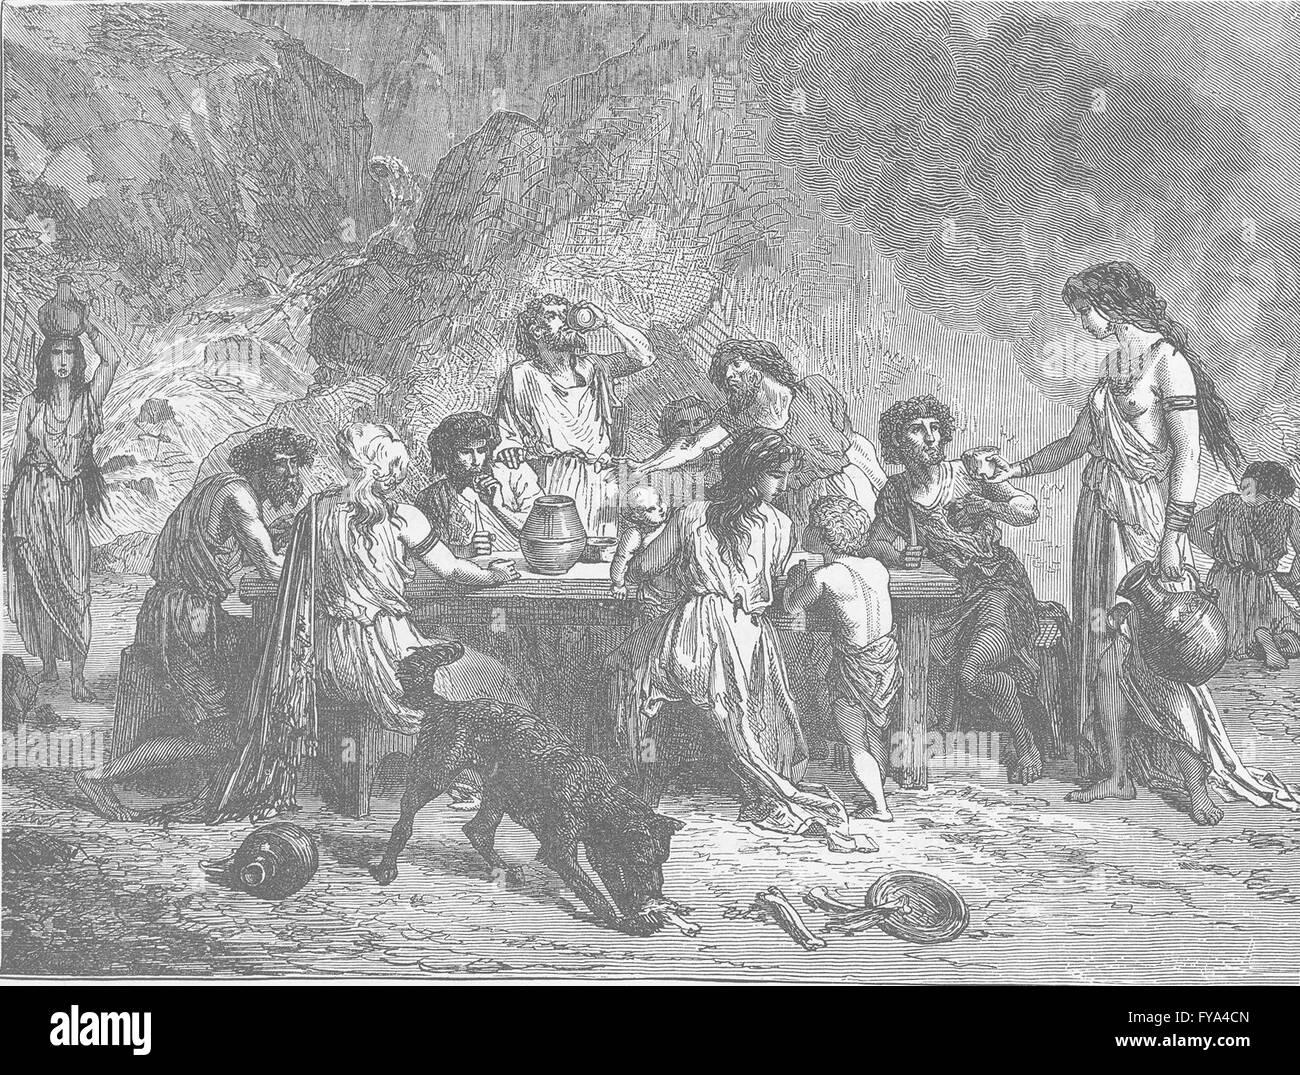 BRONZE AGE: Feast in the Bronze Age, antique print 1893 Stock Photo ...